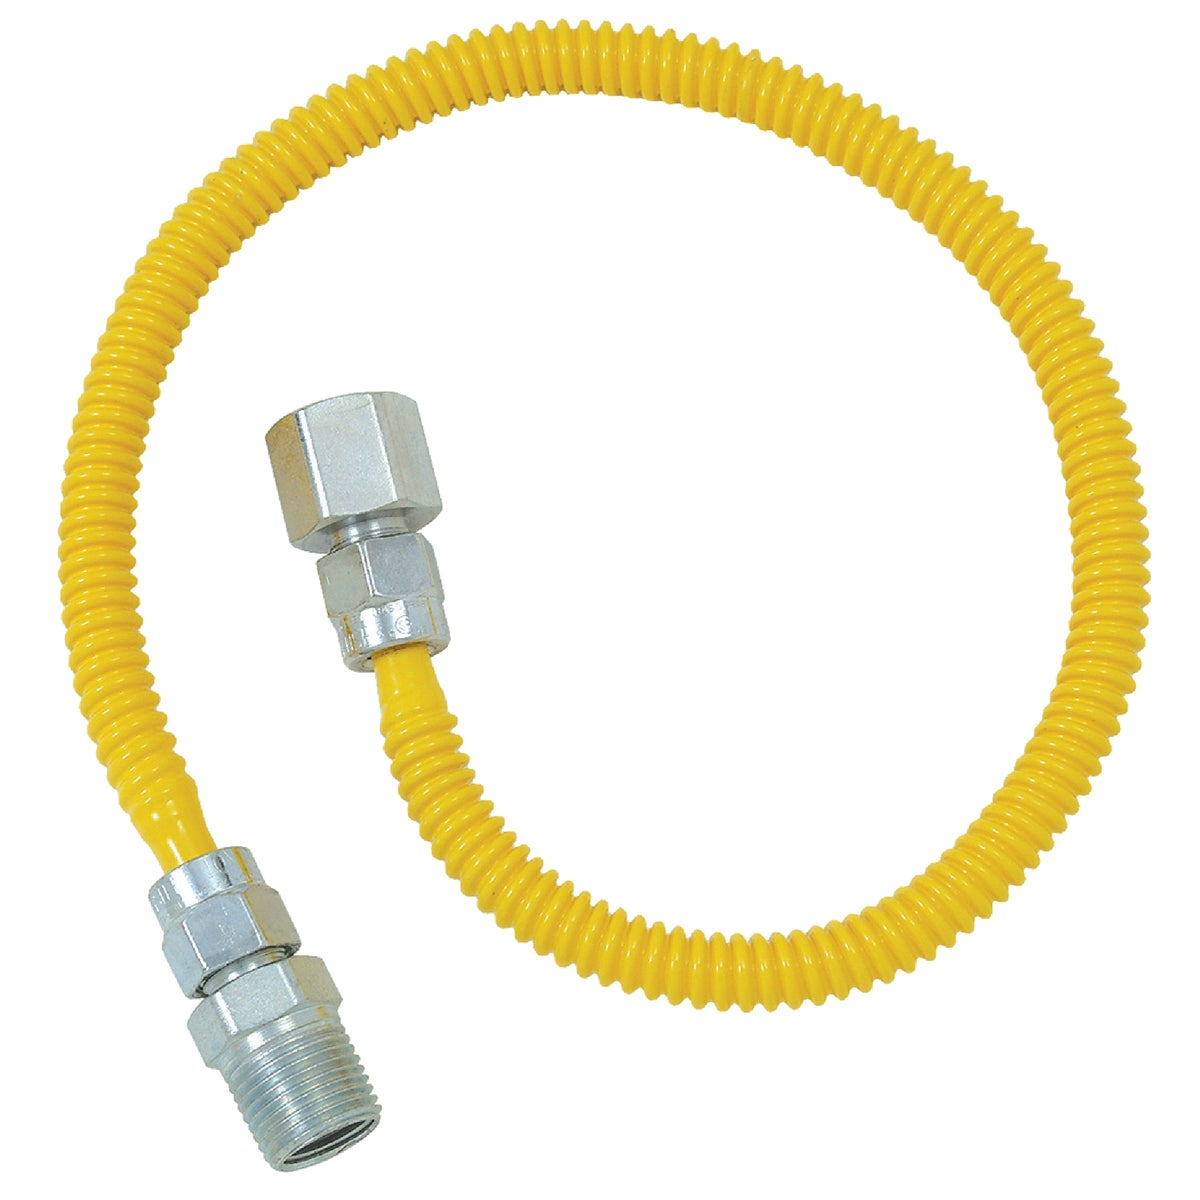 3/8X18 GAS CONNECTOR - CSSL54-18P by Brass Craft